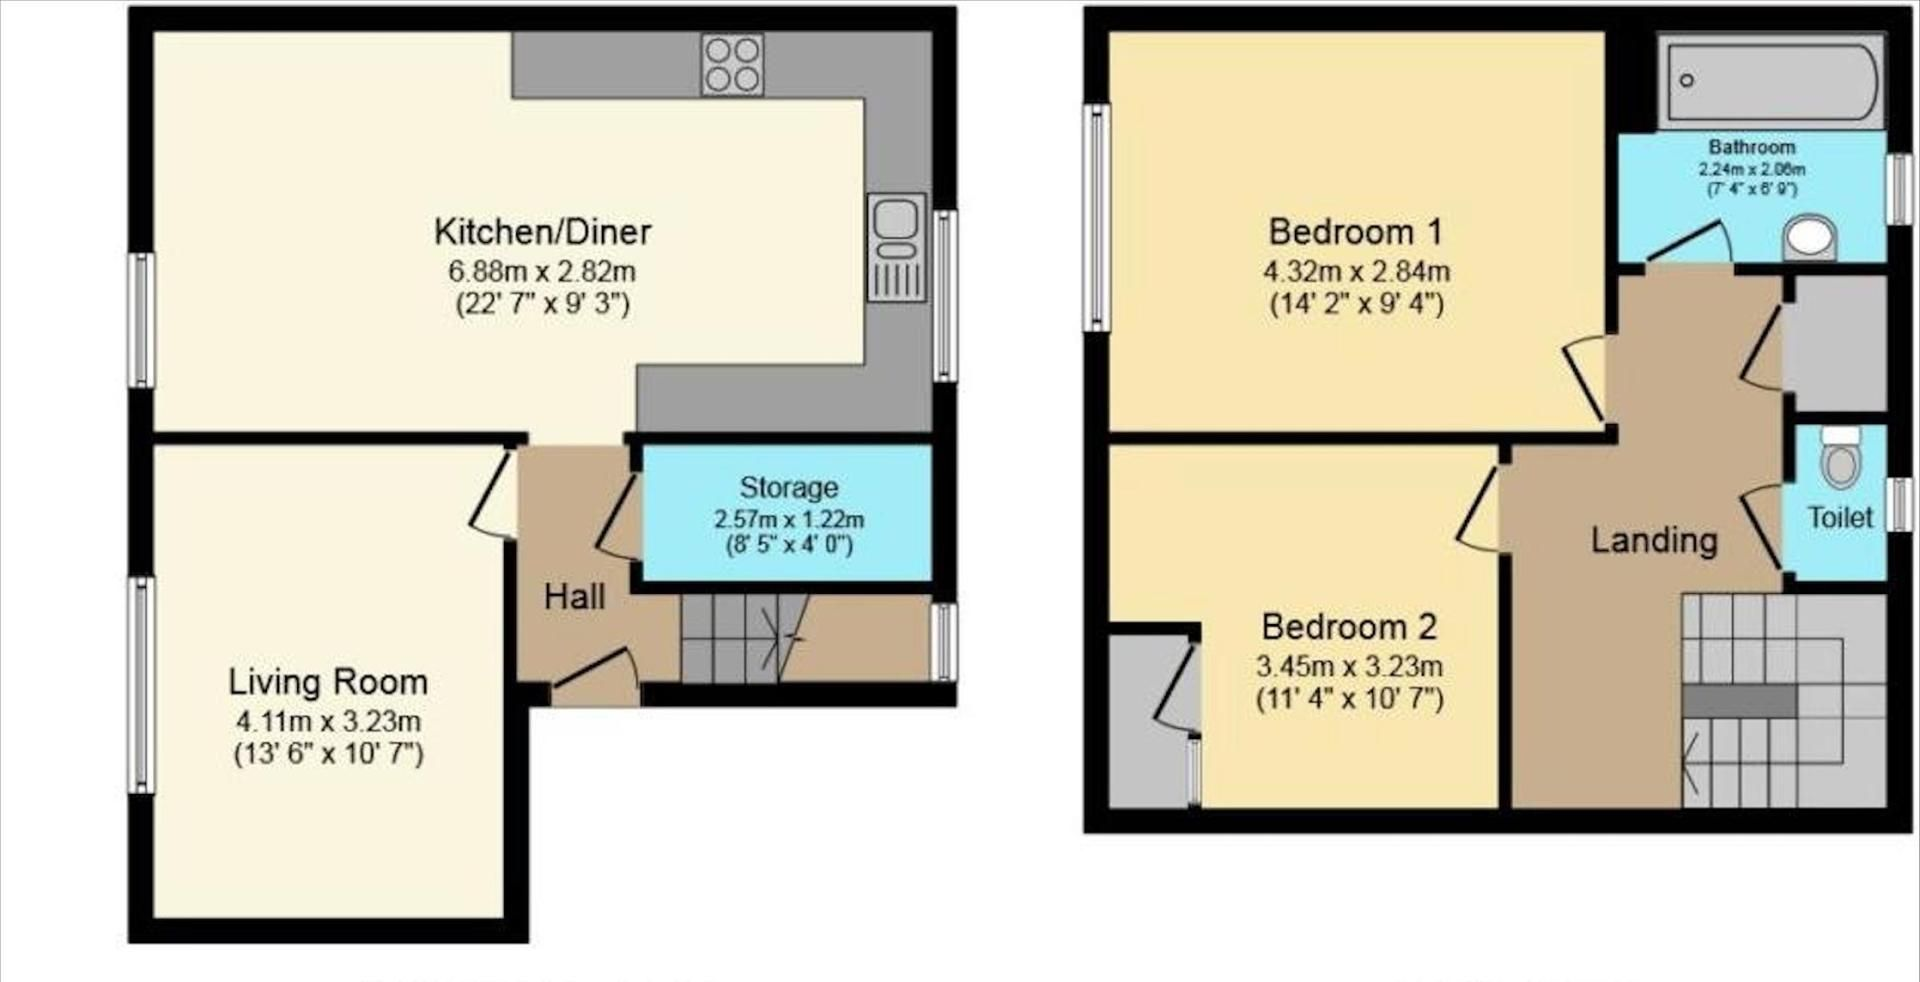 2 bed  to rent in Blackmead - Property Floorplan